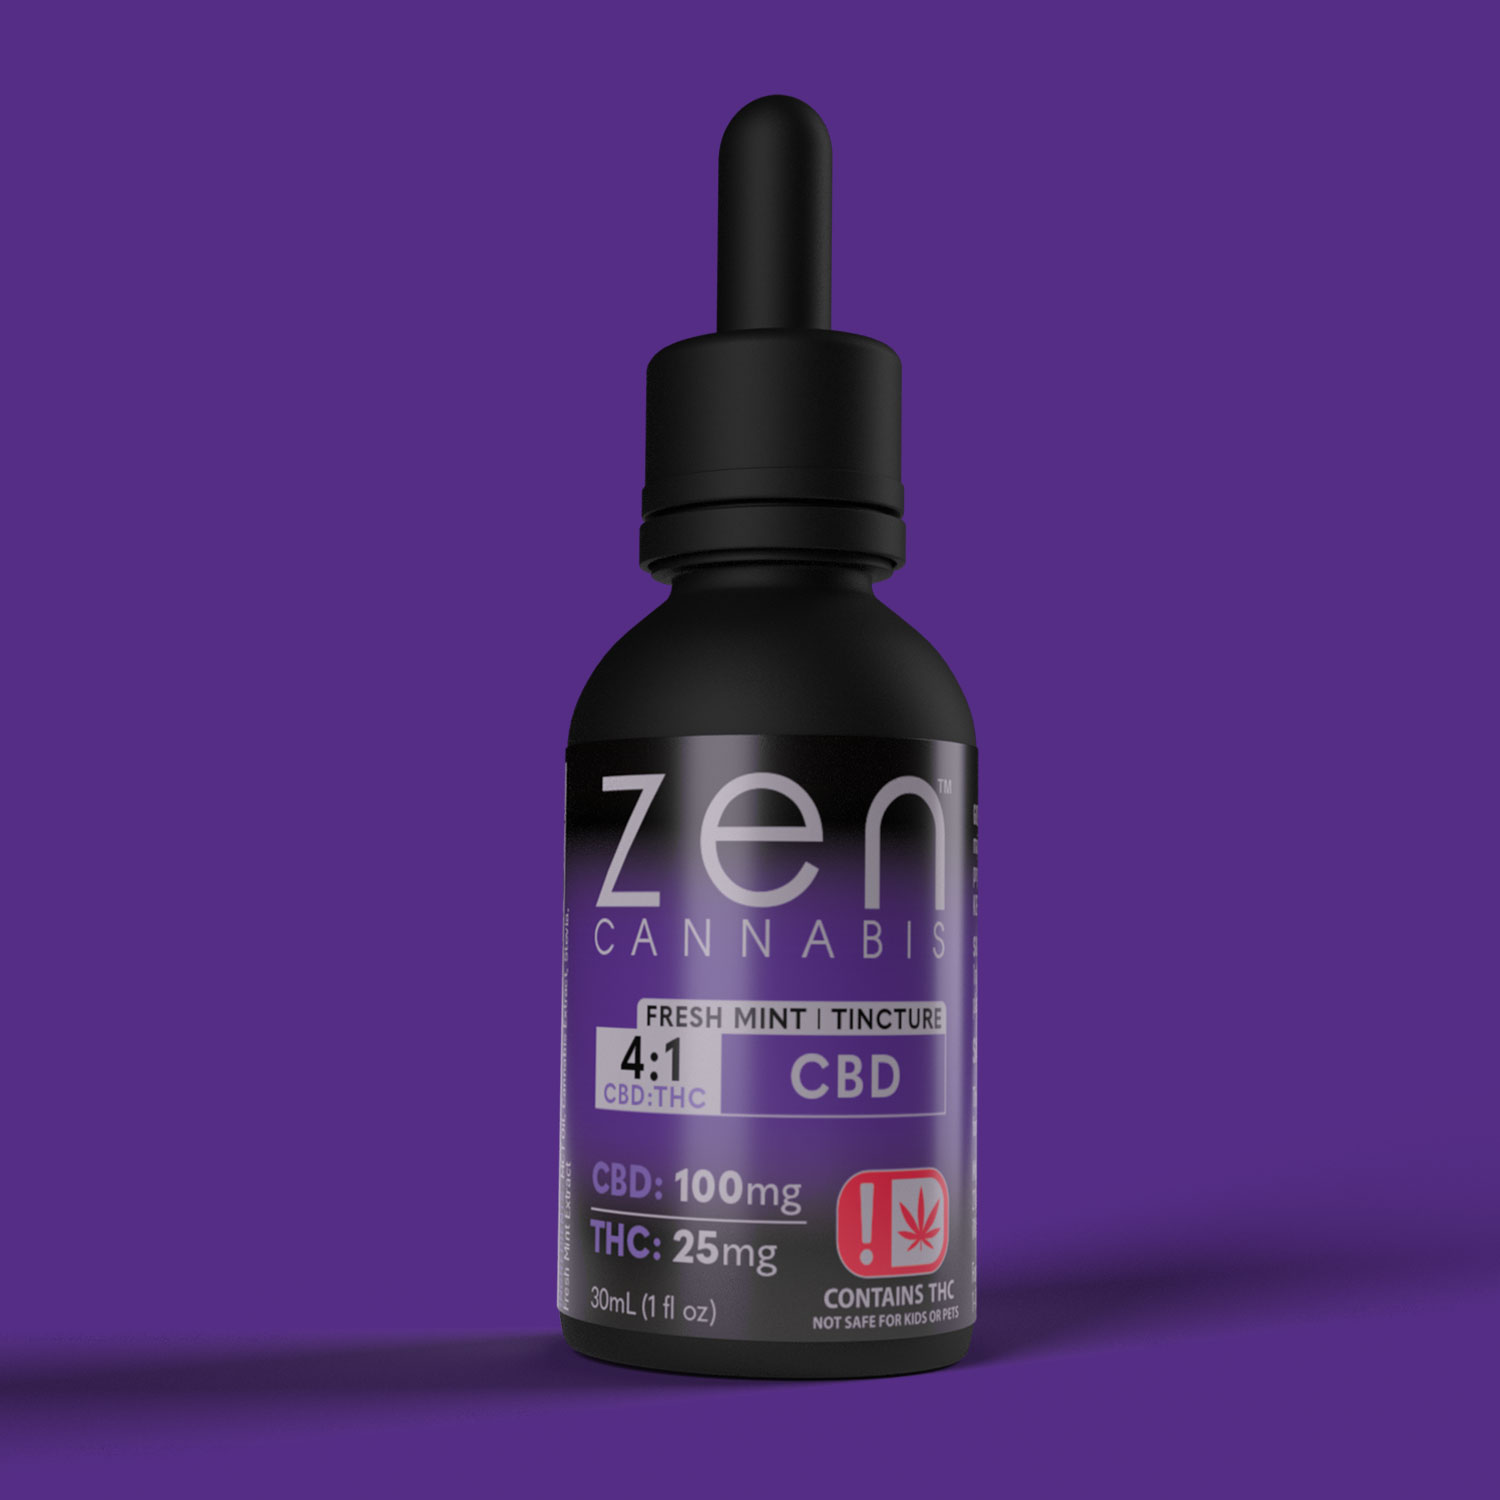 FRESH MINT 25mg THC per bottle 100mg CBD per bottle Bursting with fresh mint flavor, Zen Cannabis CBD tincture provides relief to your body and mind. This CBD-heavy tincture will keep you alert, relaxed and in control.  25mg THC   100mg CBD 1oz (30ml)